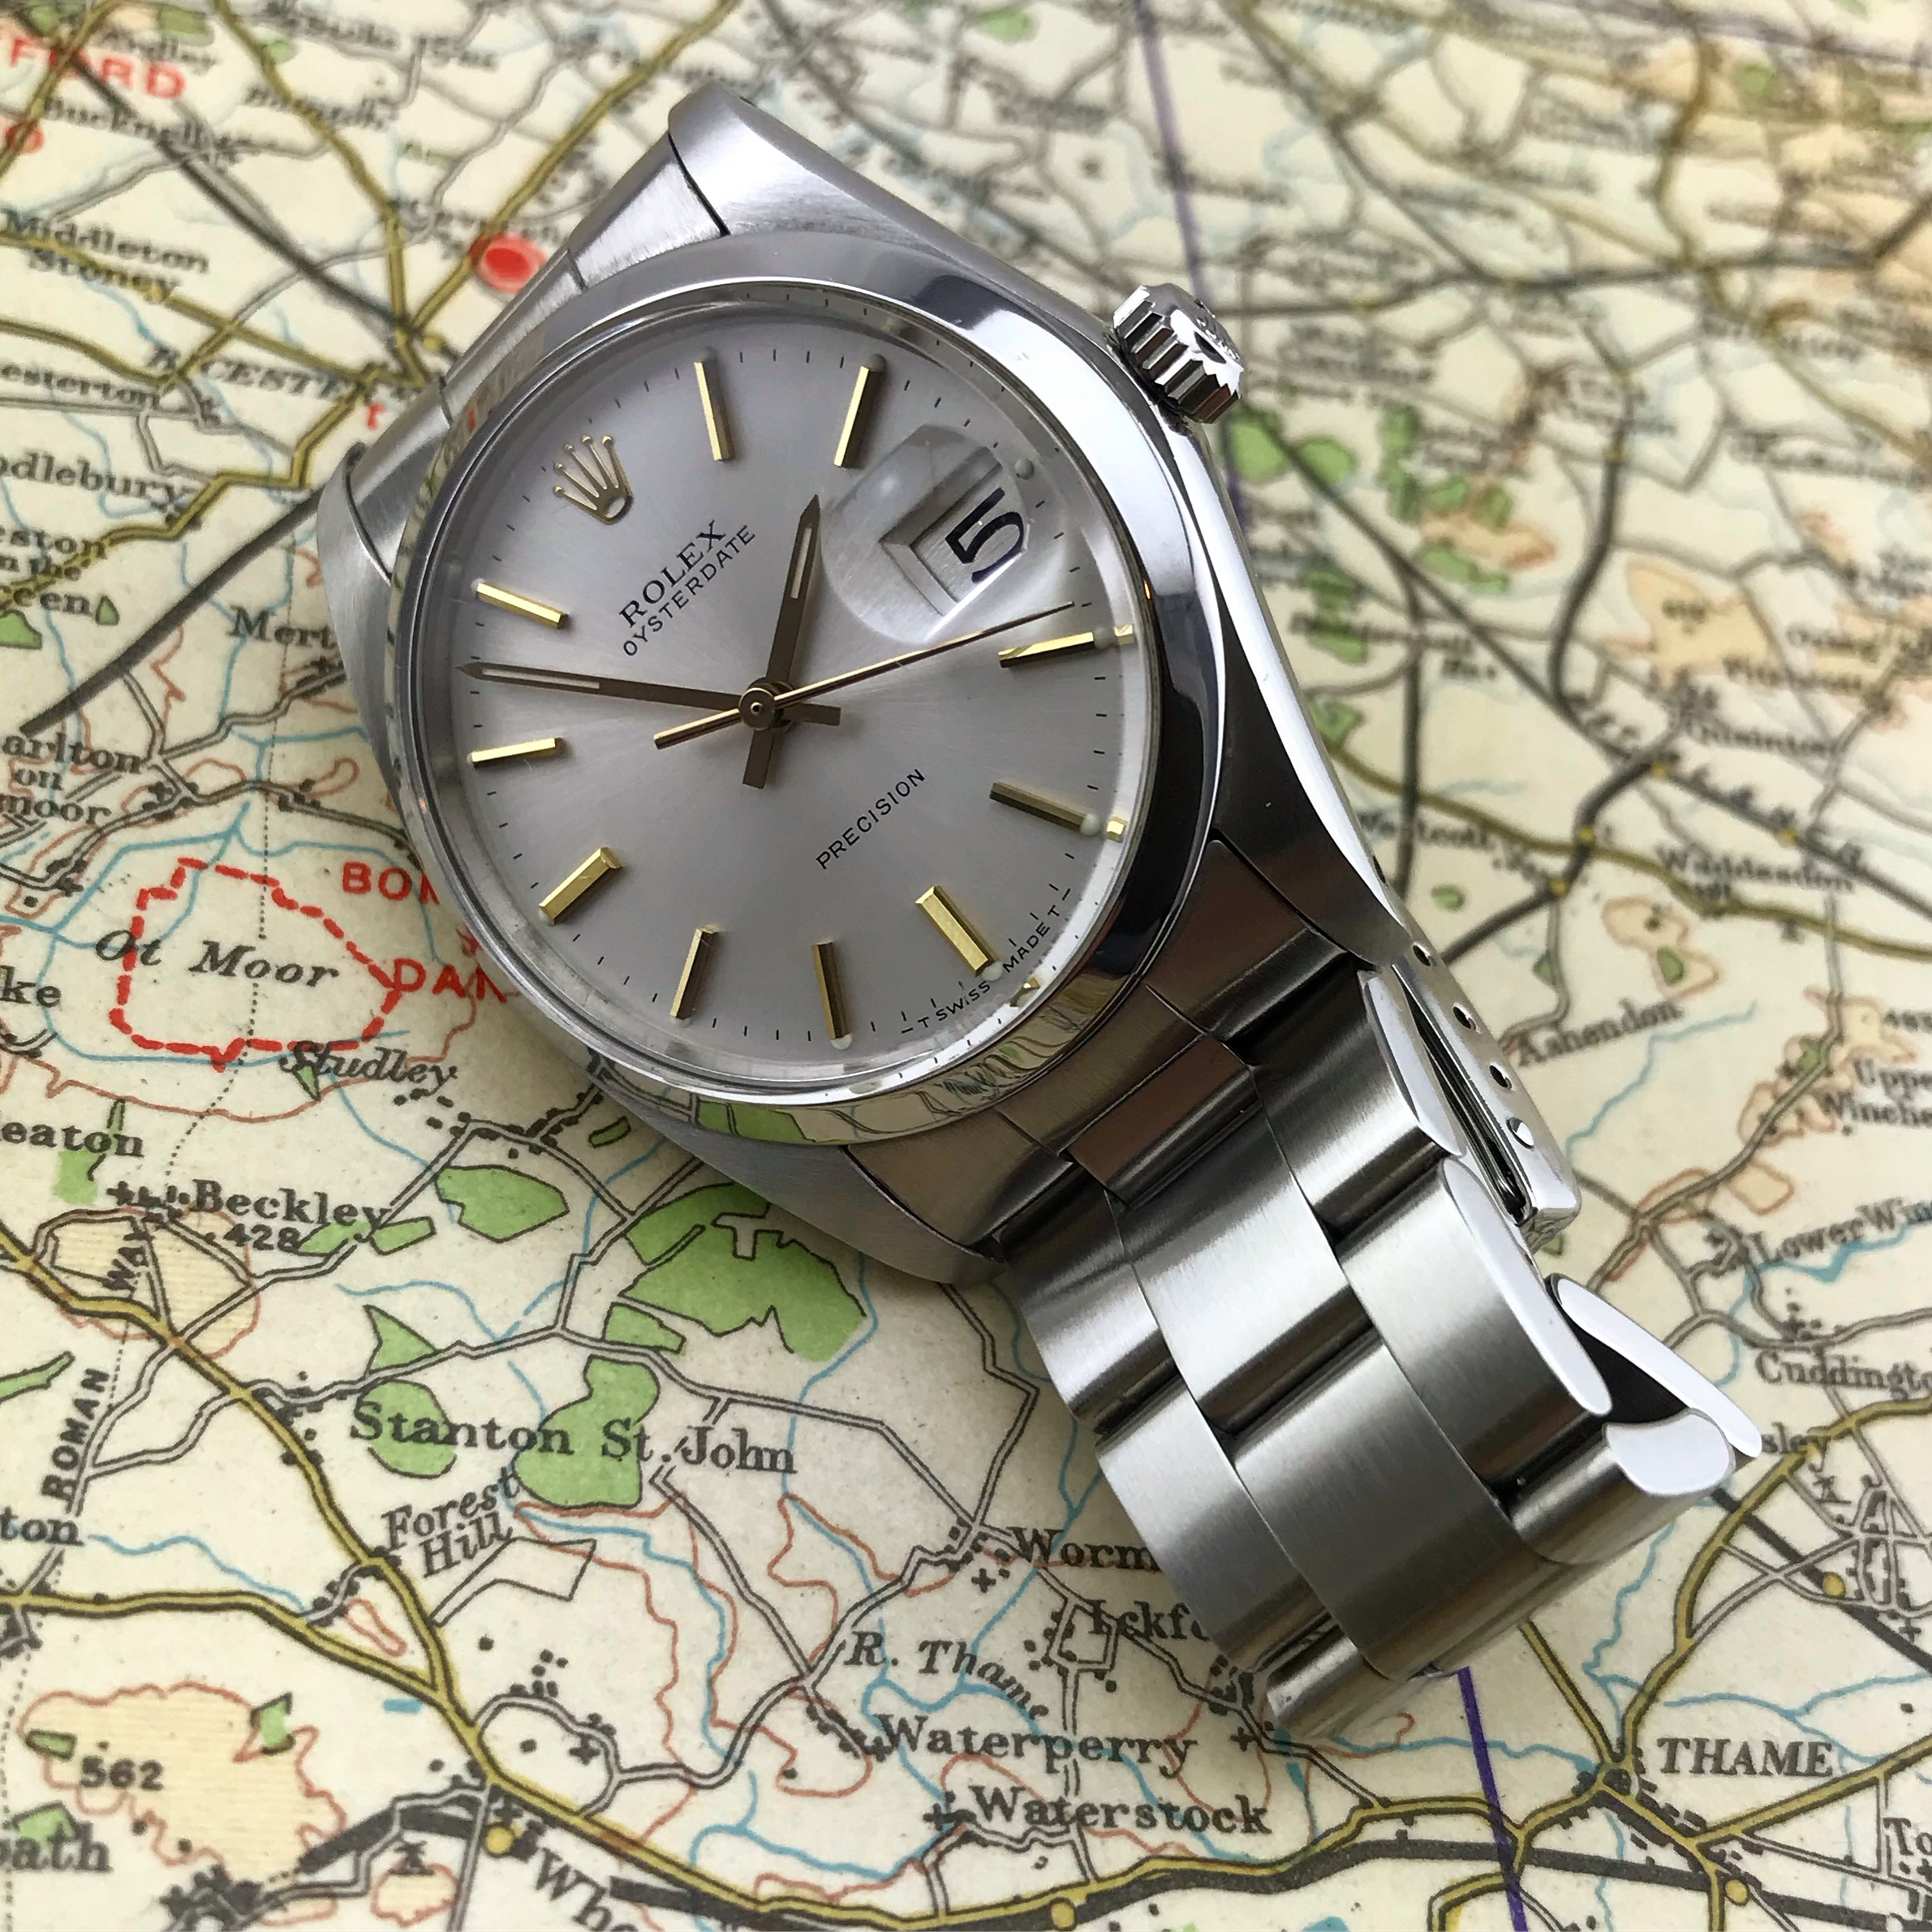 Rolex OysterDate Precision Watch ref 6694 (1978).